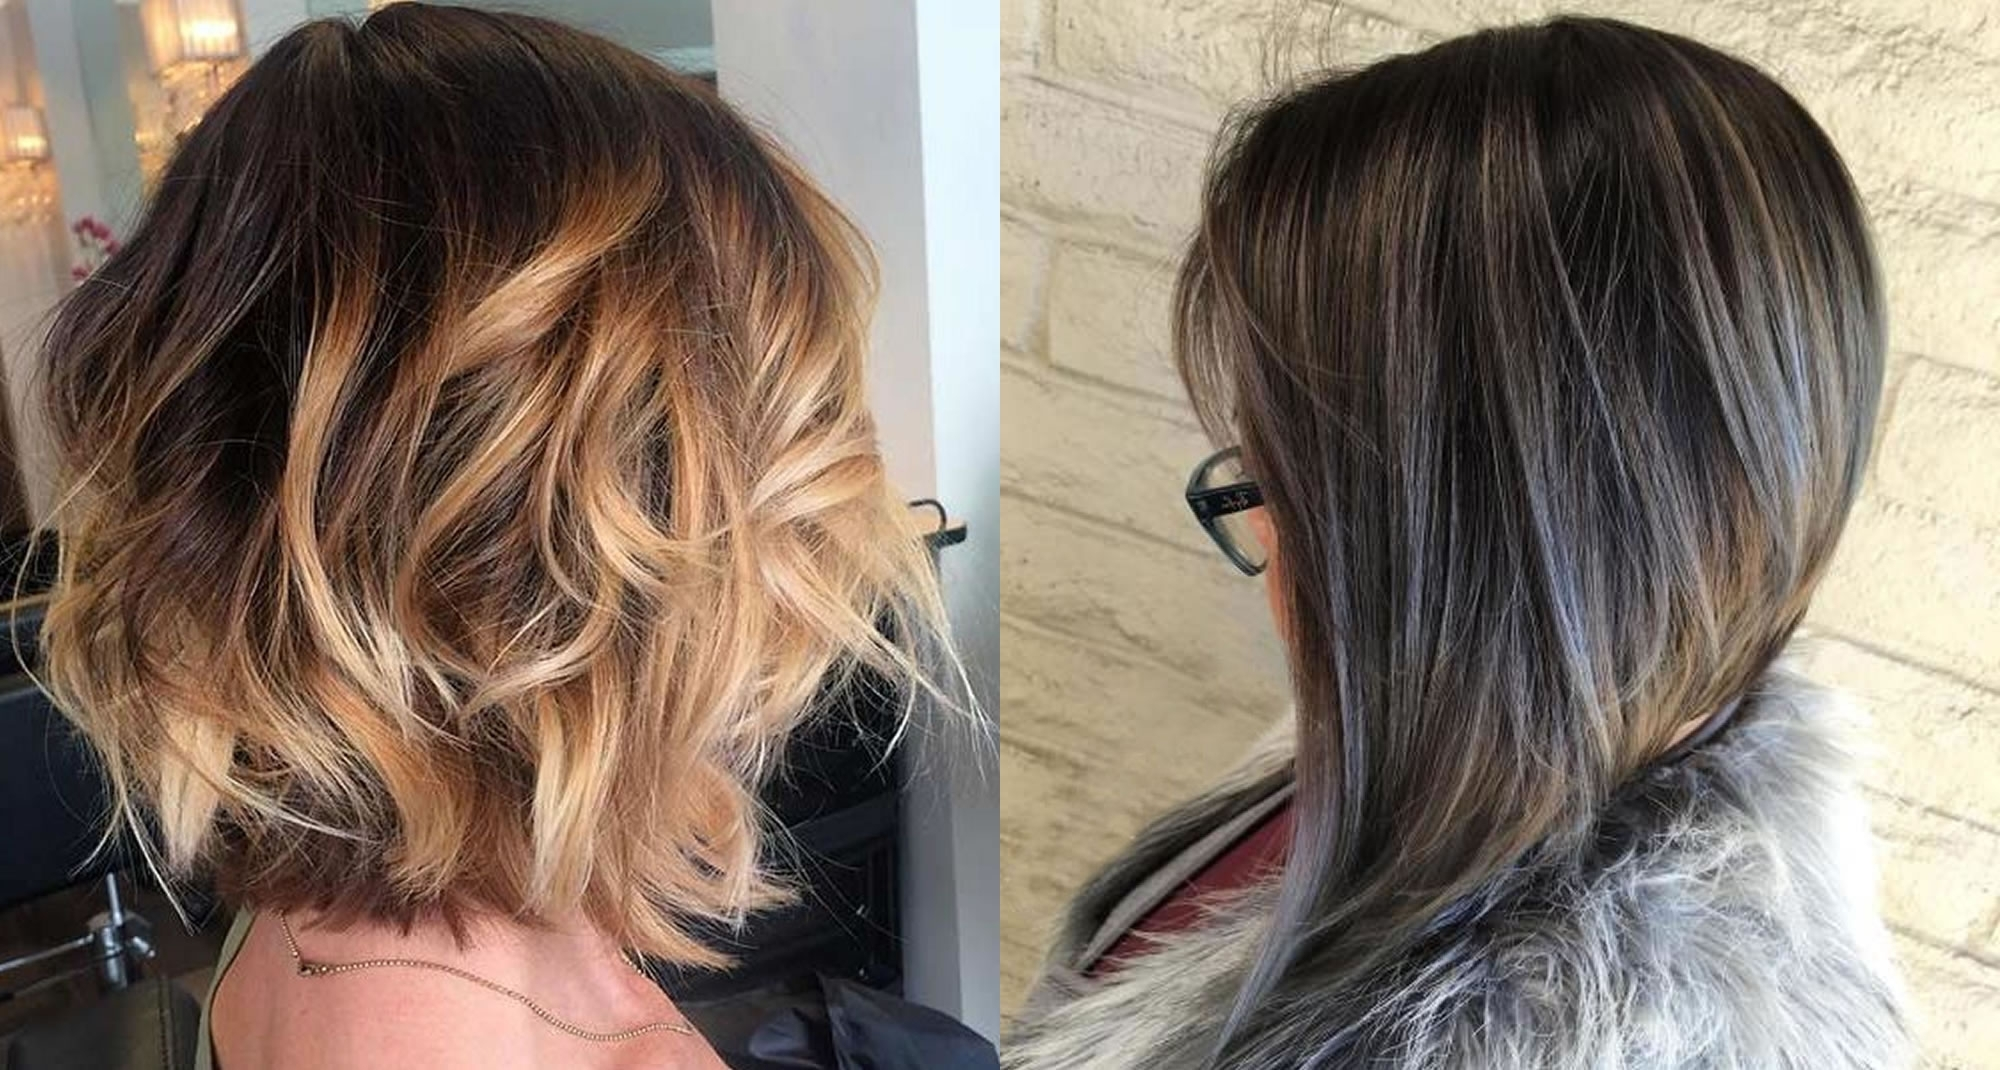 Most Current Shaggy Pixie Hairstyles With Balayage Highlights Regarding The Best 50 Balayage Bob Hairstyles (Short+Long) & Highlights – Page (View 12 of 20)